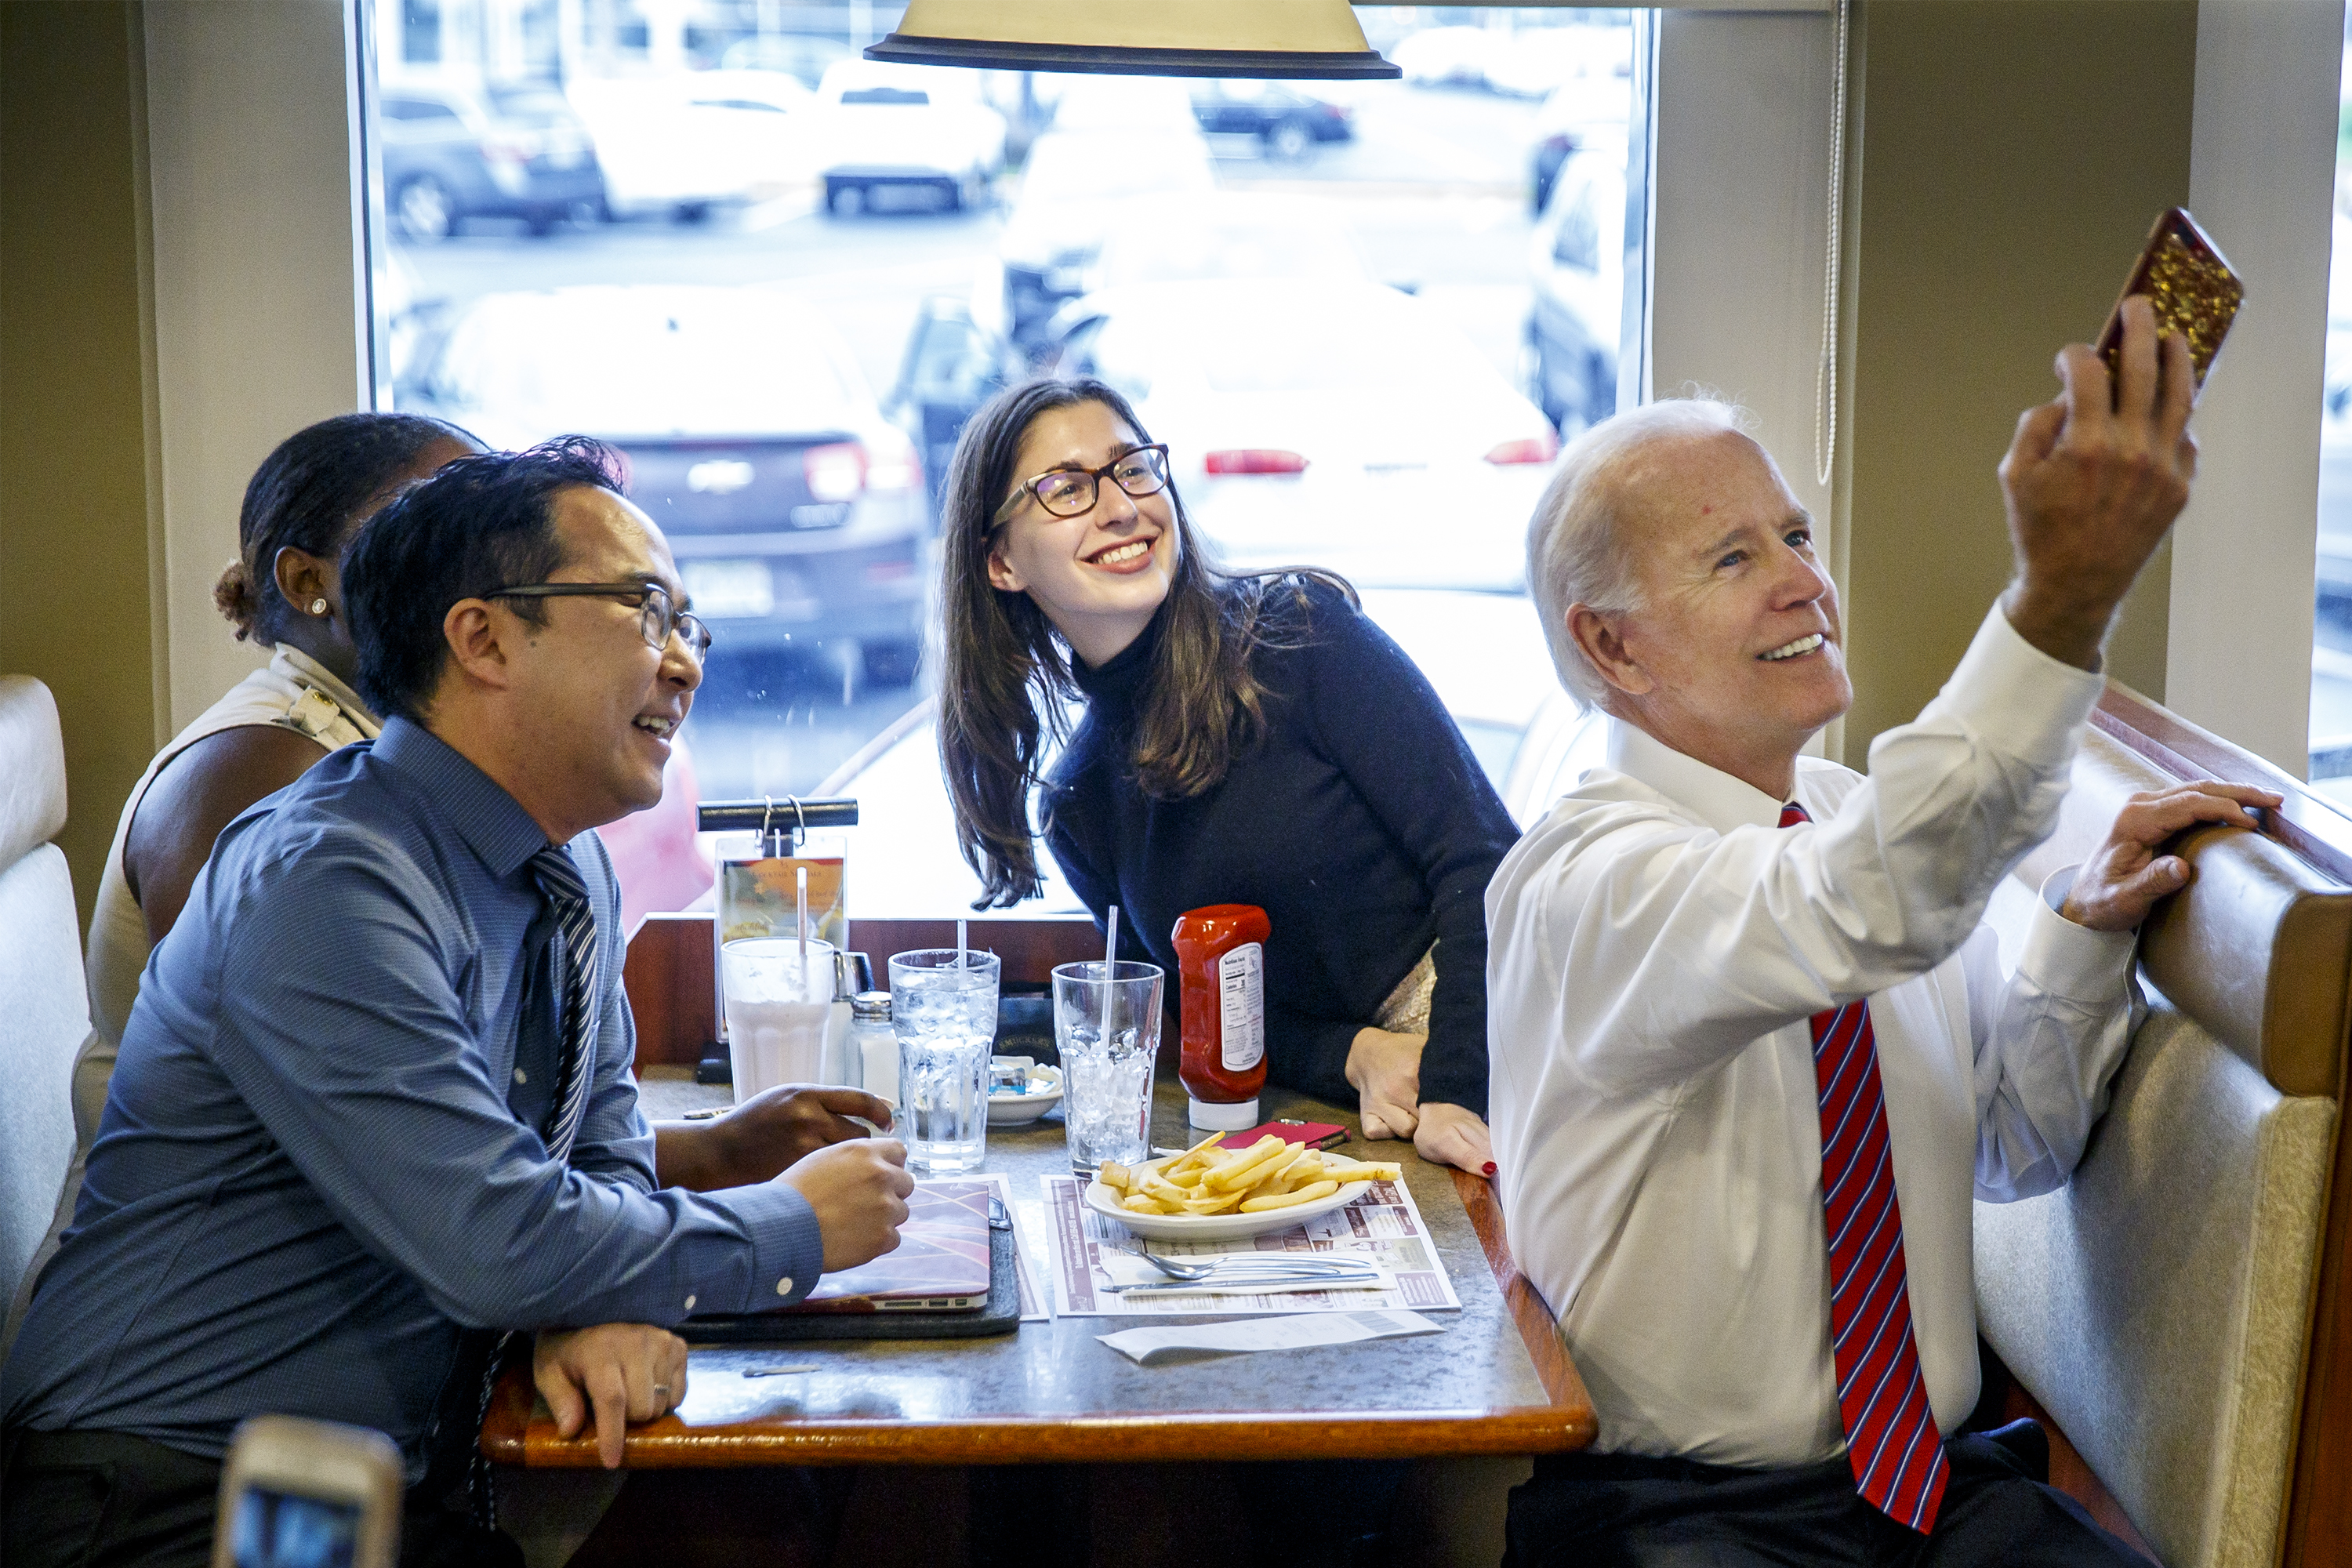 Former vice president Joe Biden, right, takes a selfie with Democratic candidate Andy Kim, left, and diners at the Golden Dawn Diner in Willingboro , NJ on October 15, 2018.